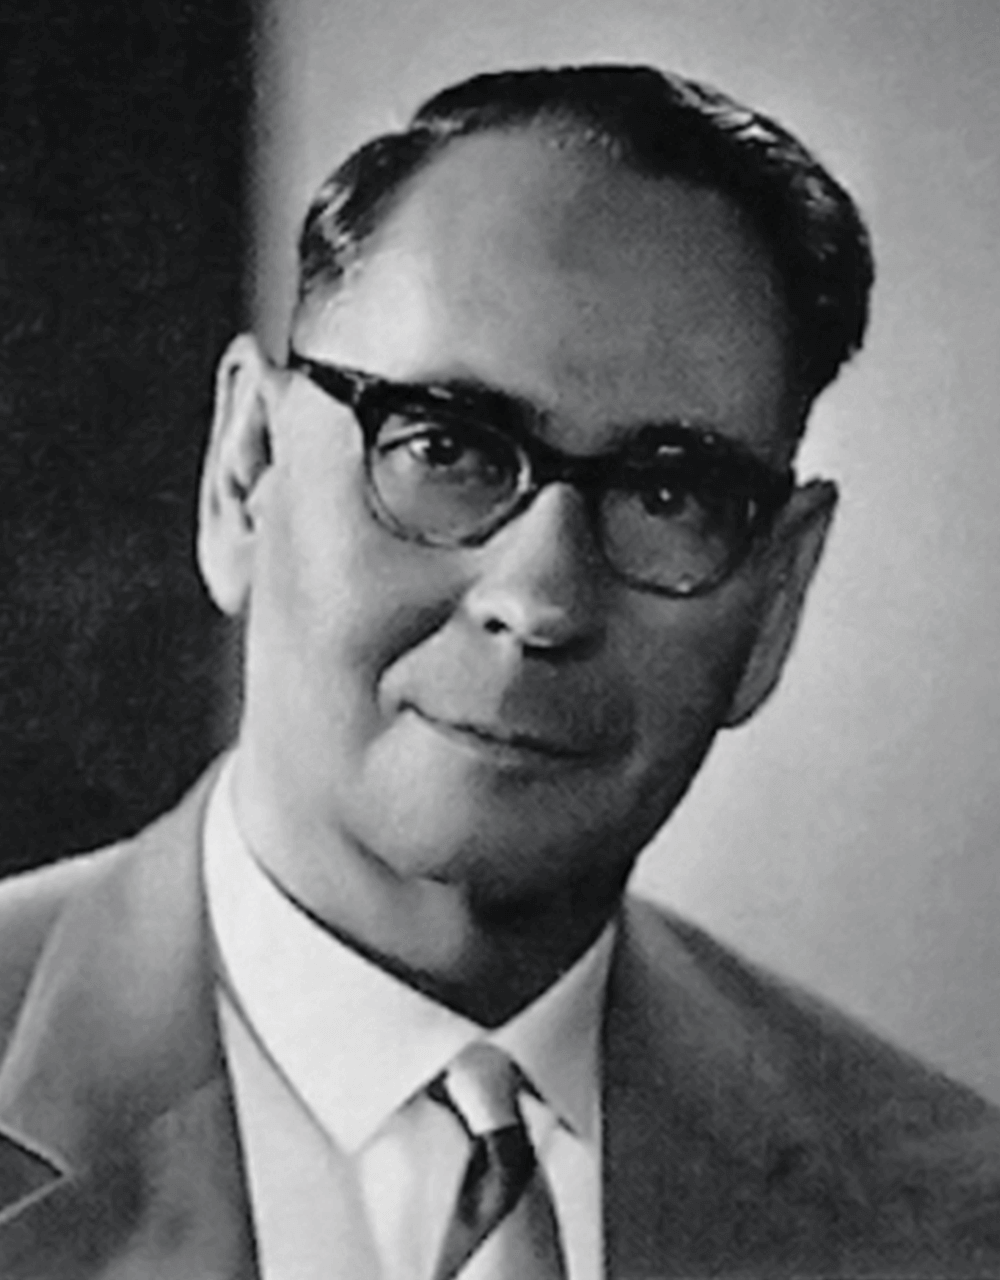 Karlheinrich Heller - he assumes the management of the company in 1941